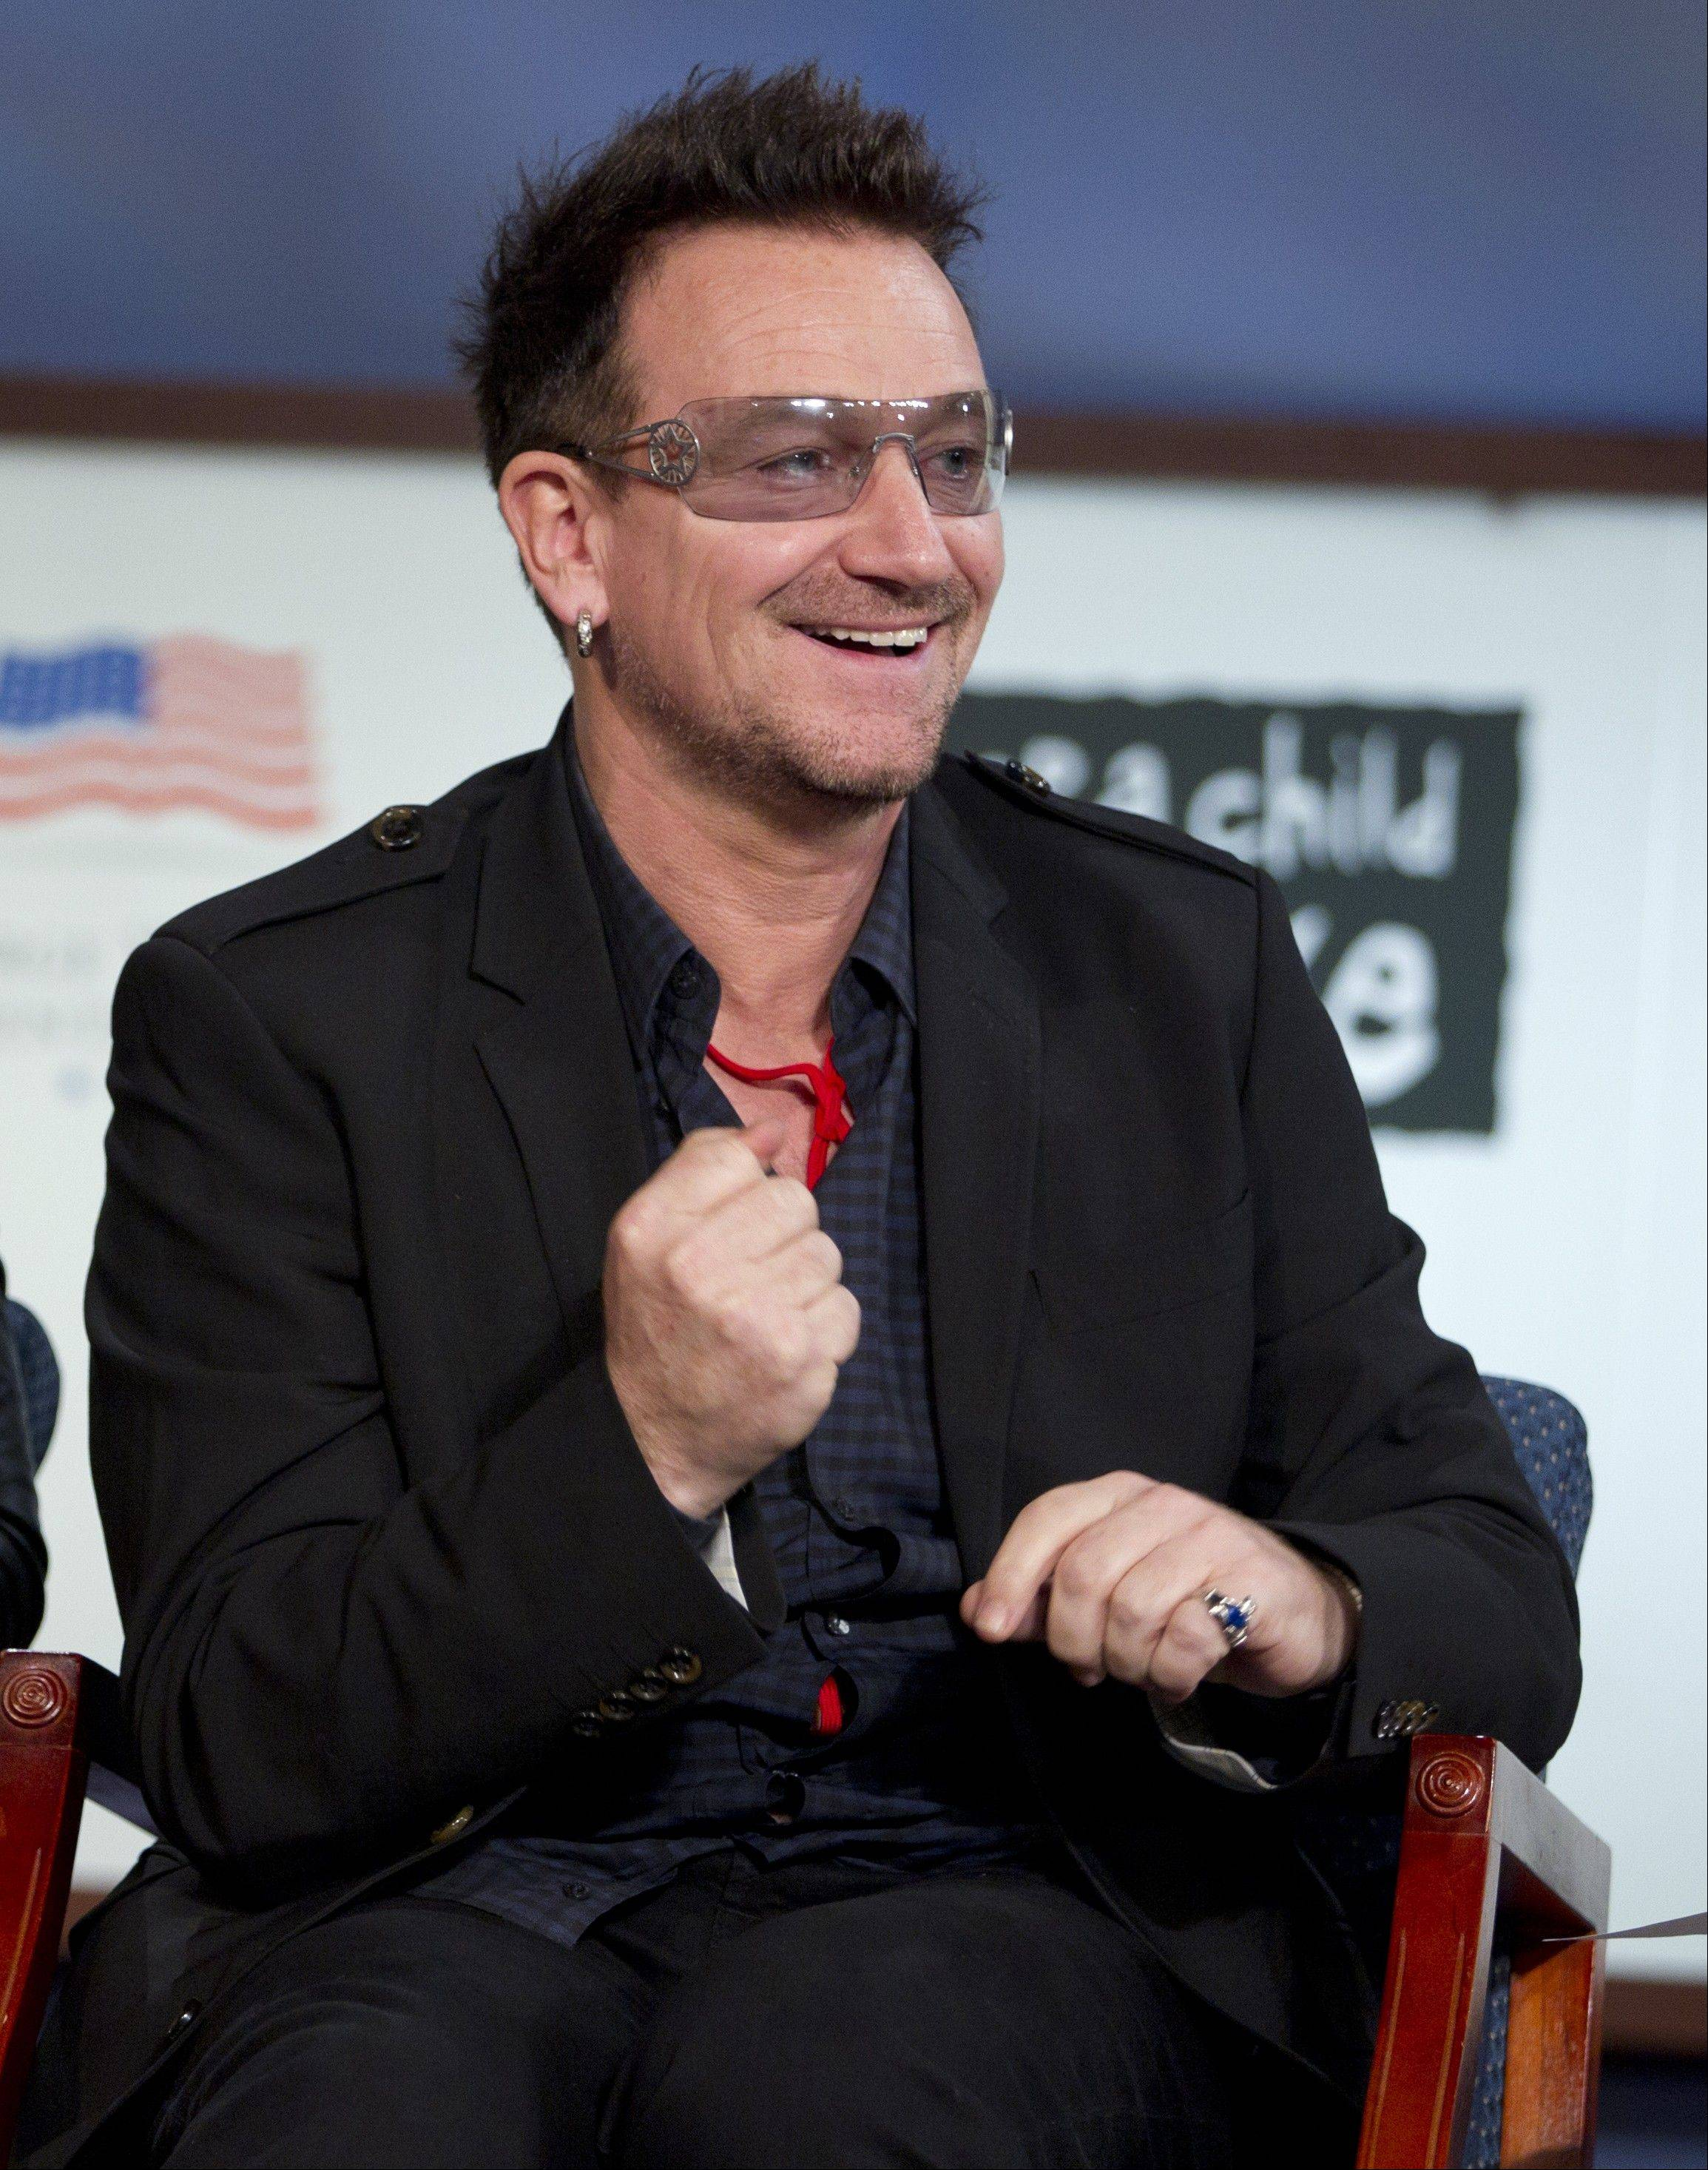 Musician Bono speaks during a panel discussion on World AIDS Day at George Washington University on Thursday, Dec. 1, 2011 in Washington.